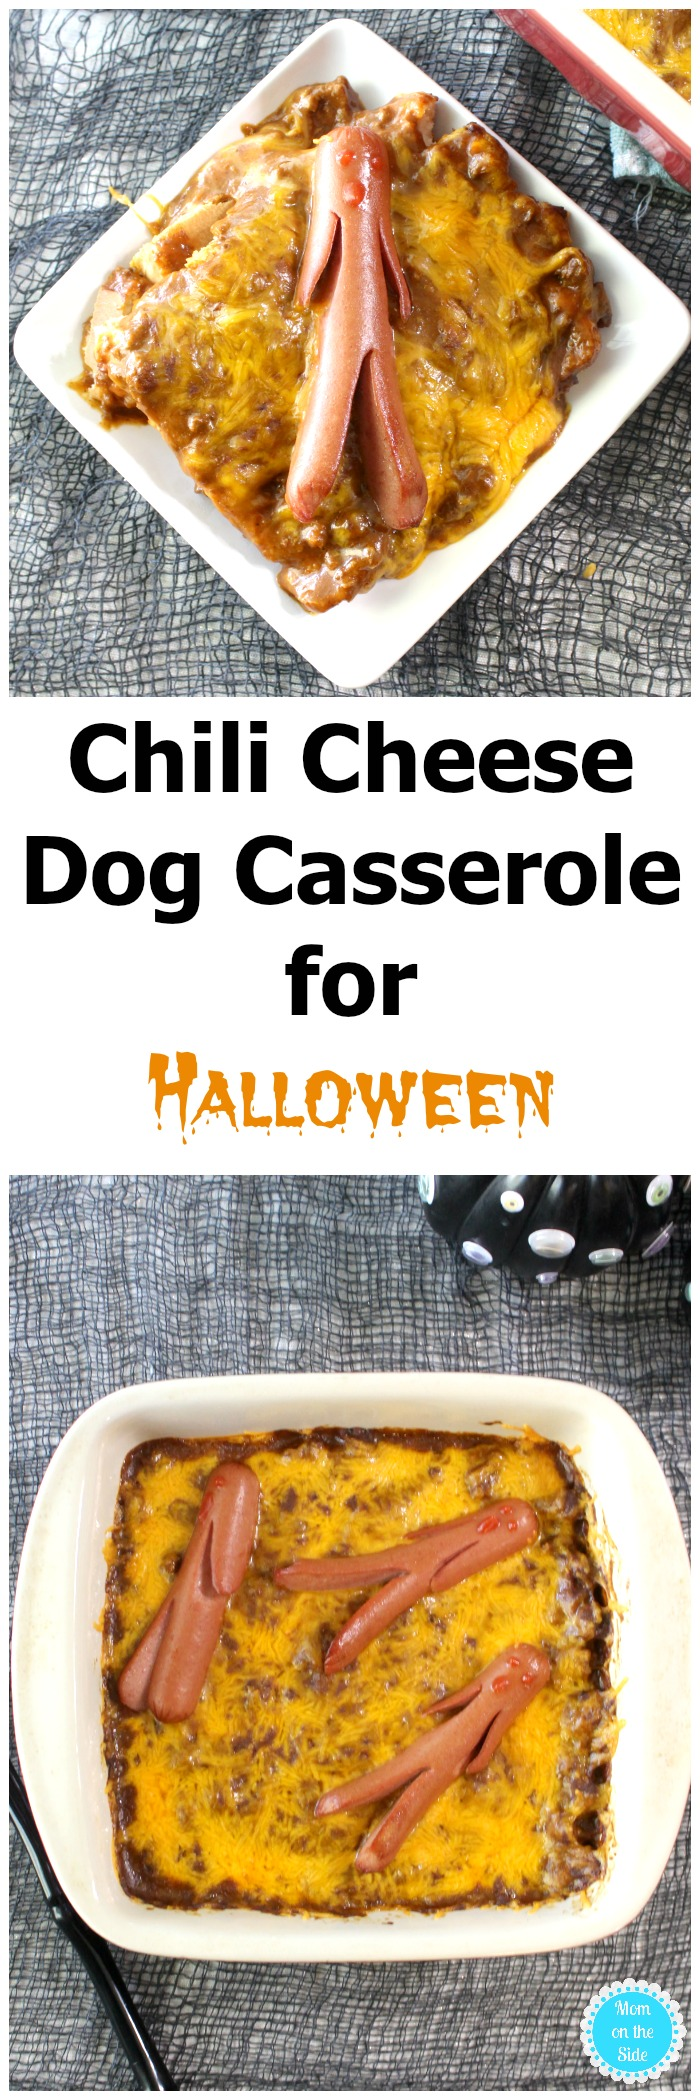 Want a fun and easy Halloween dinner for family? Whip up this easy recipe for Chili Cheese Dog Casserole!